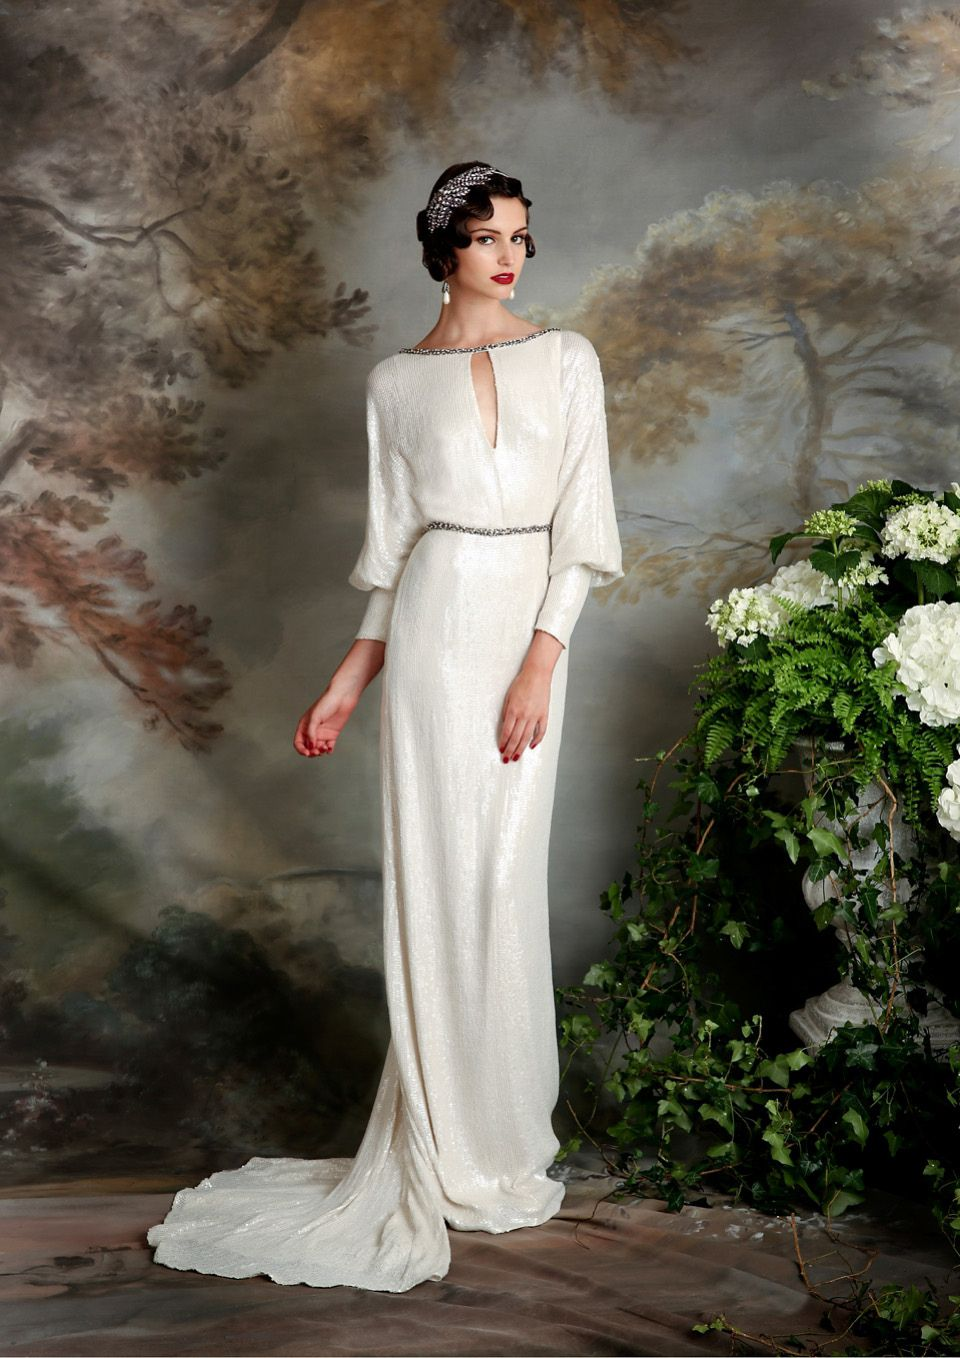 77 art deco wedding dresses wedding dresses for the mature bride 77 art deco wedding dresses wedding dresses for the mature bride check more at junglespirit Choice Image